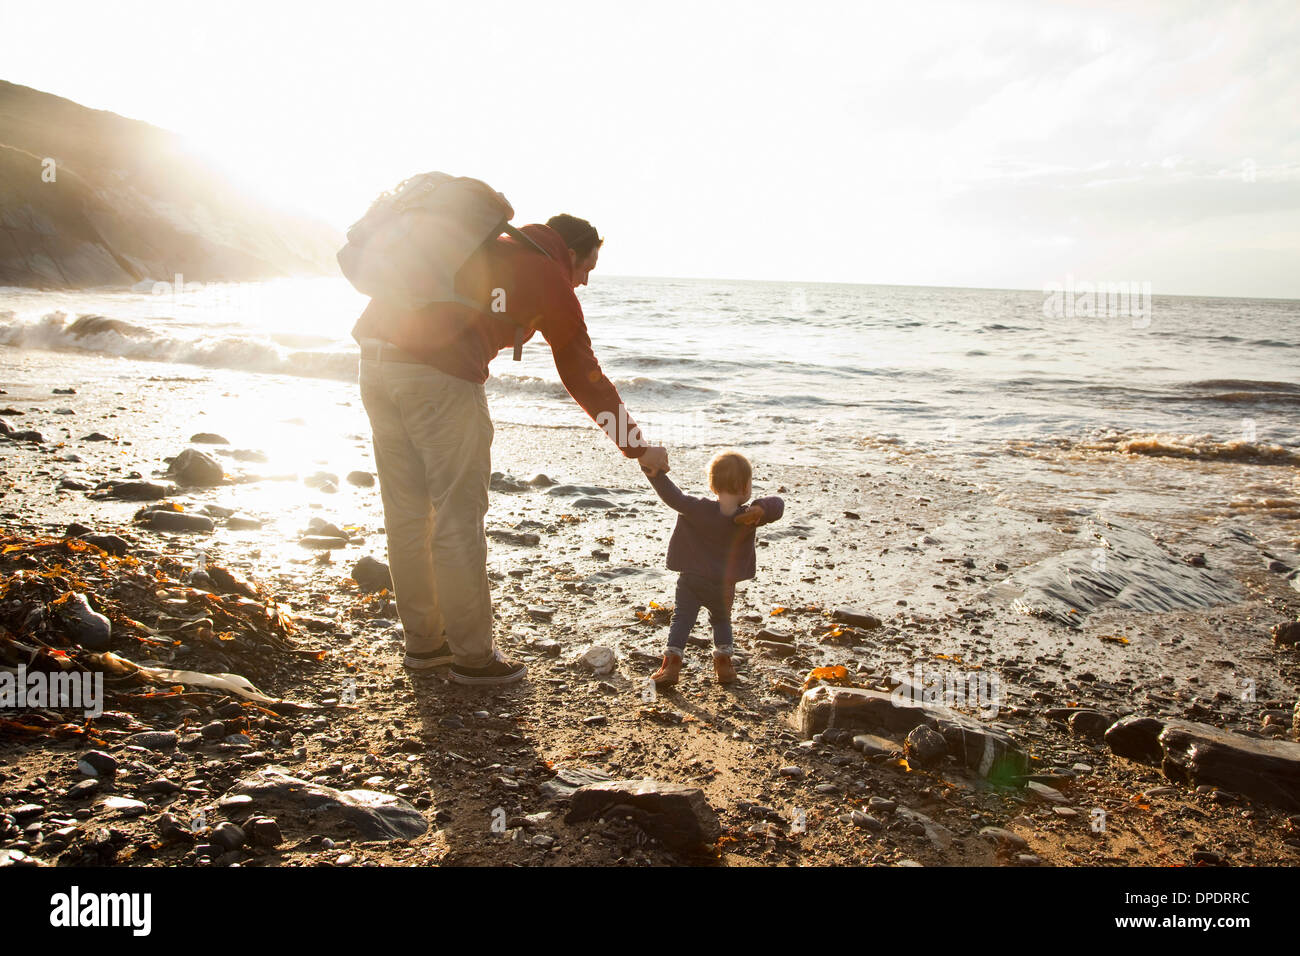 Father and child enjoying beach - Stock Image